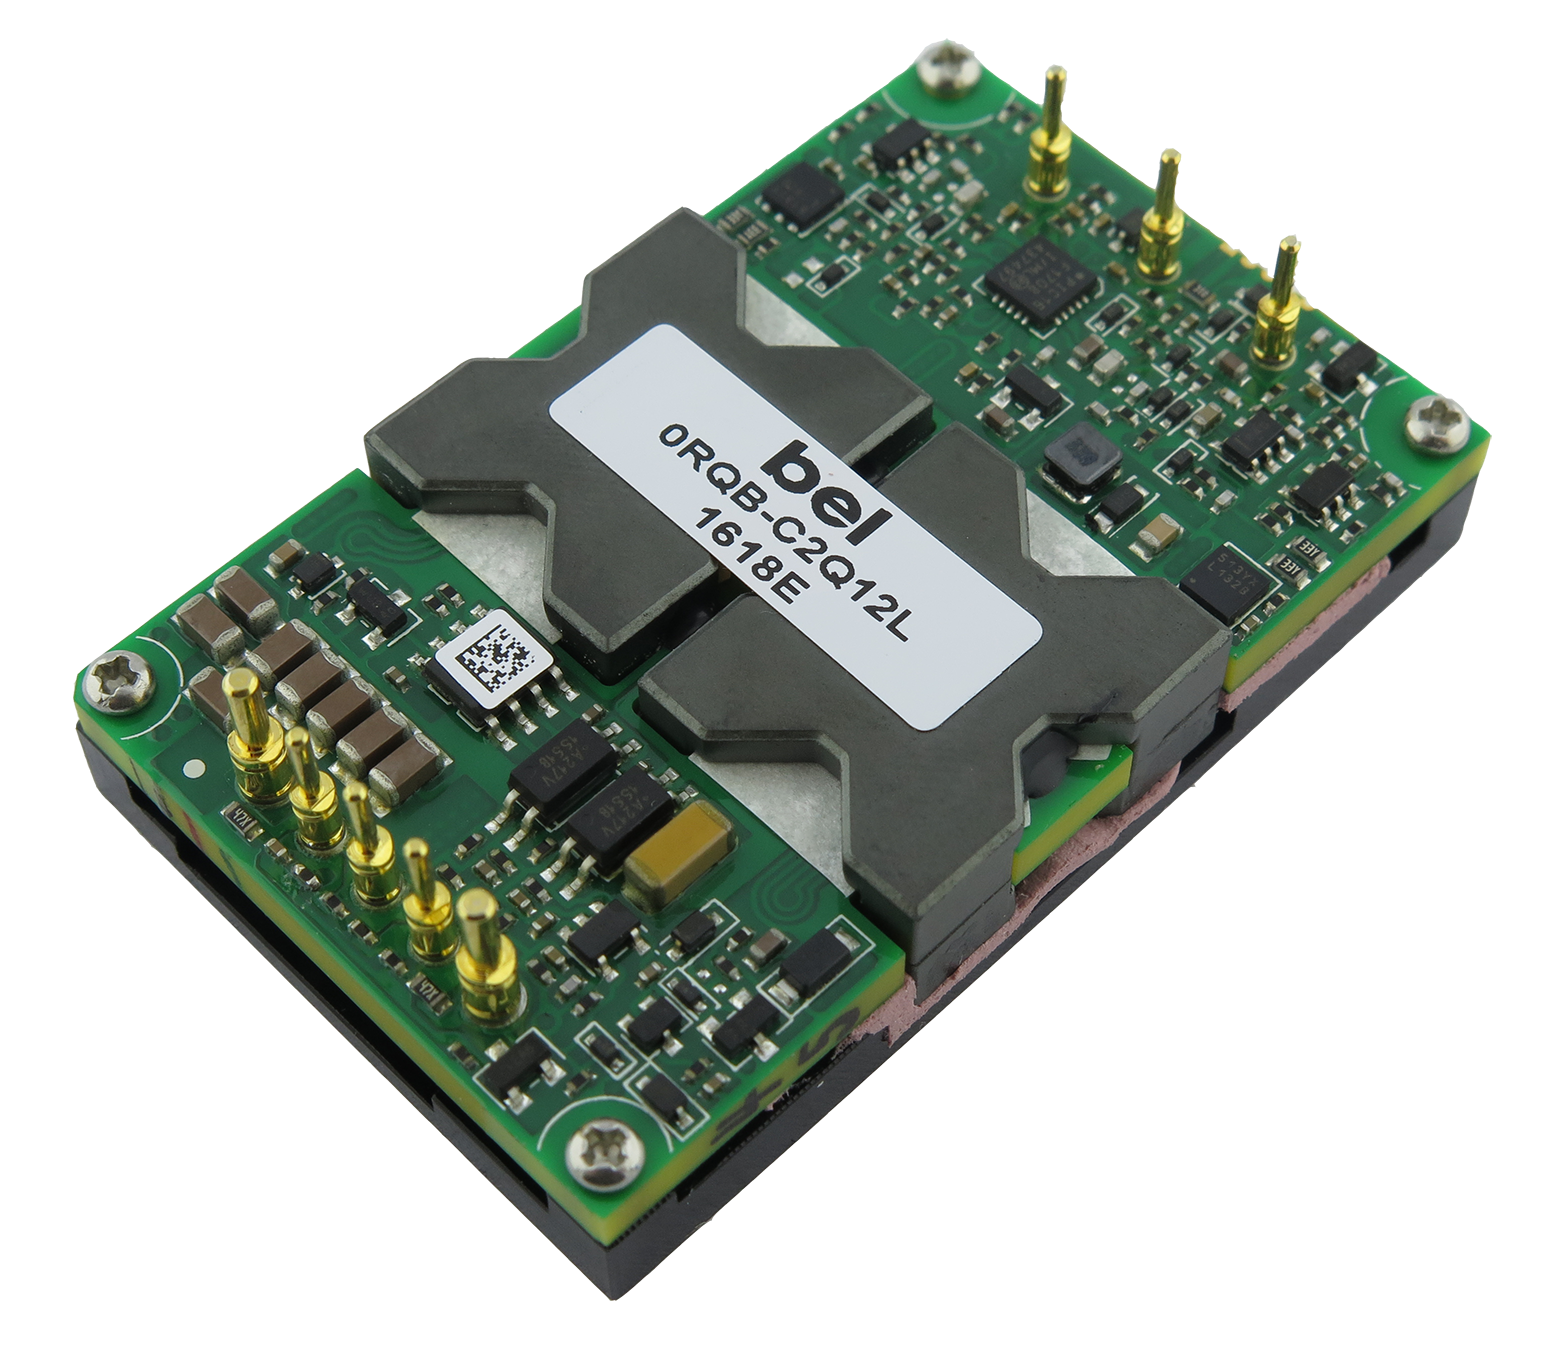 156 W Isolated Qtr. Brick DC/DC Converter Designed for Passenger Wi-Fi